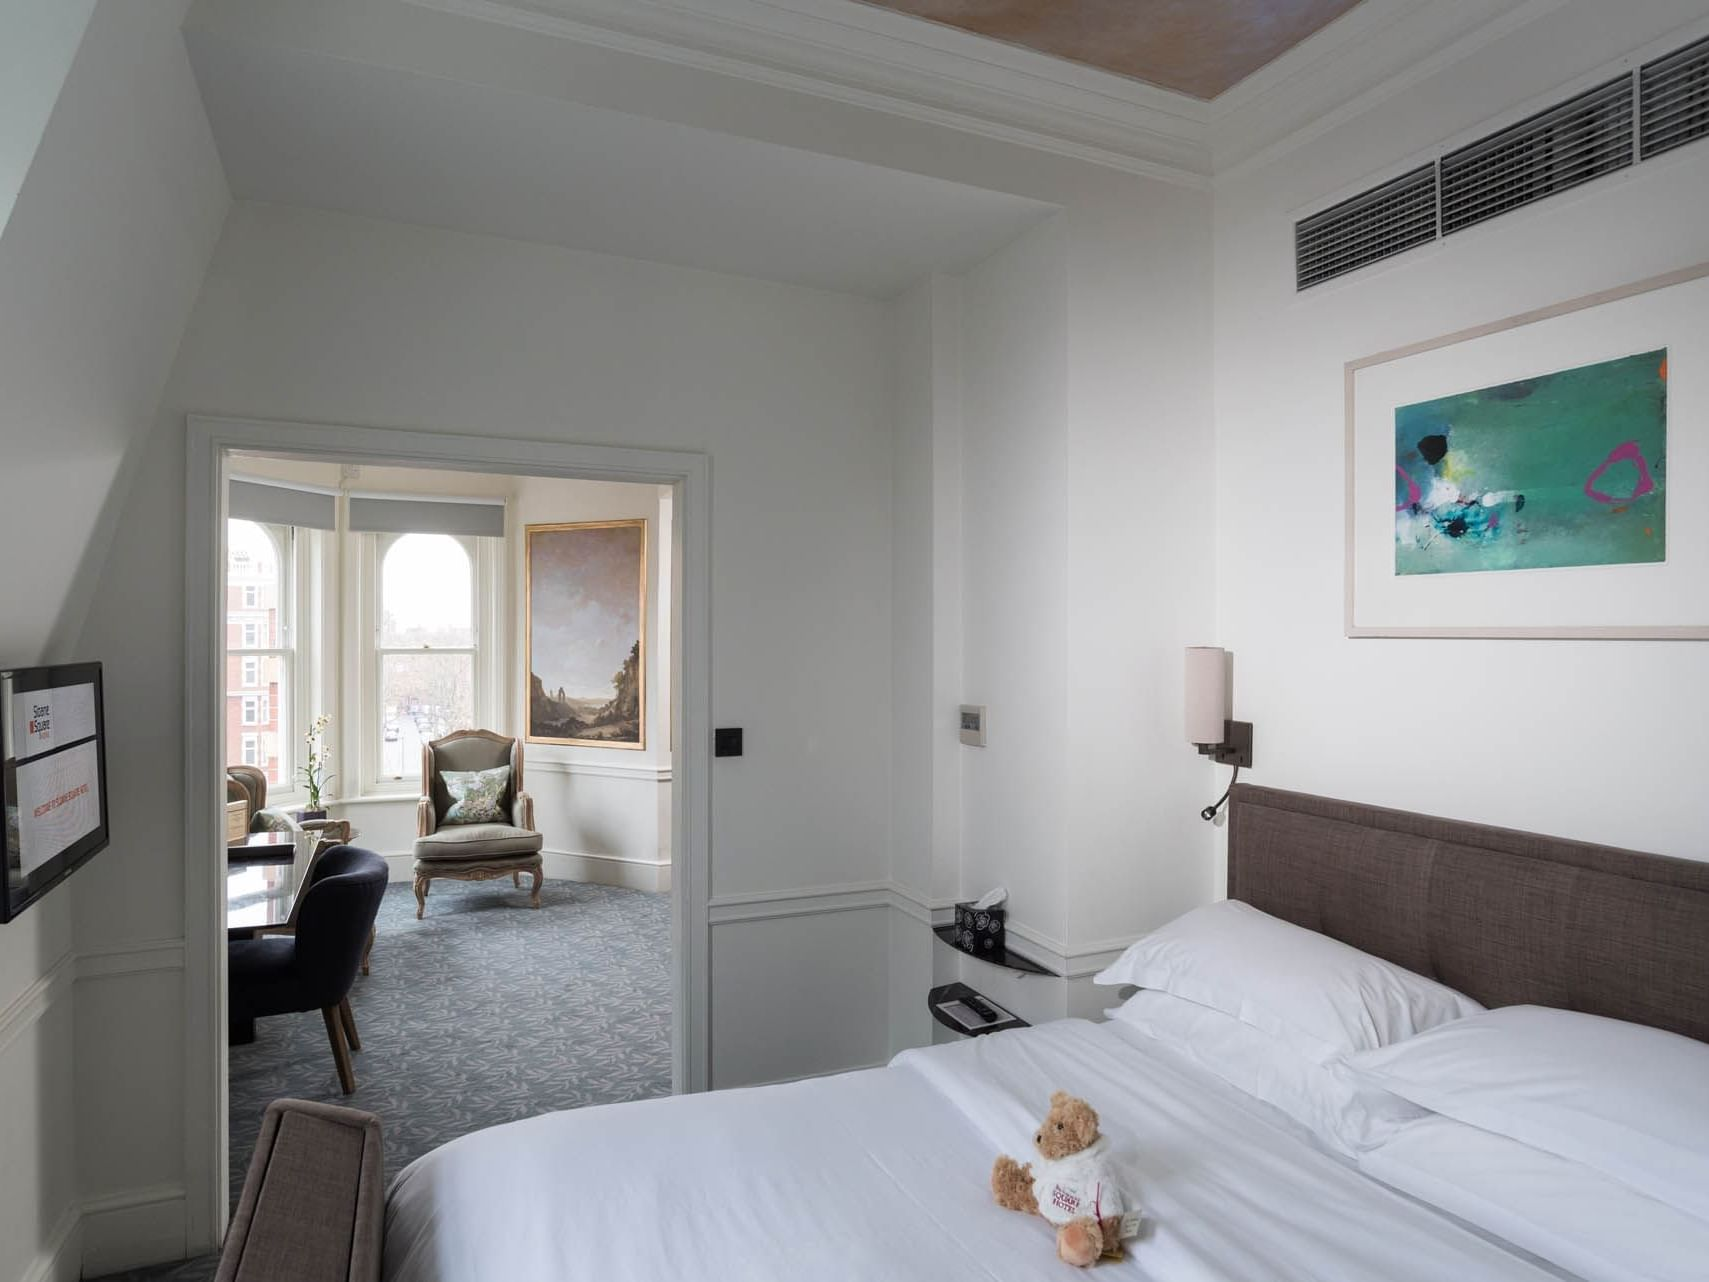 Junior suite with lobby at Sloane Square Hotel